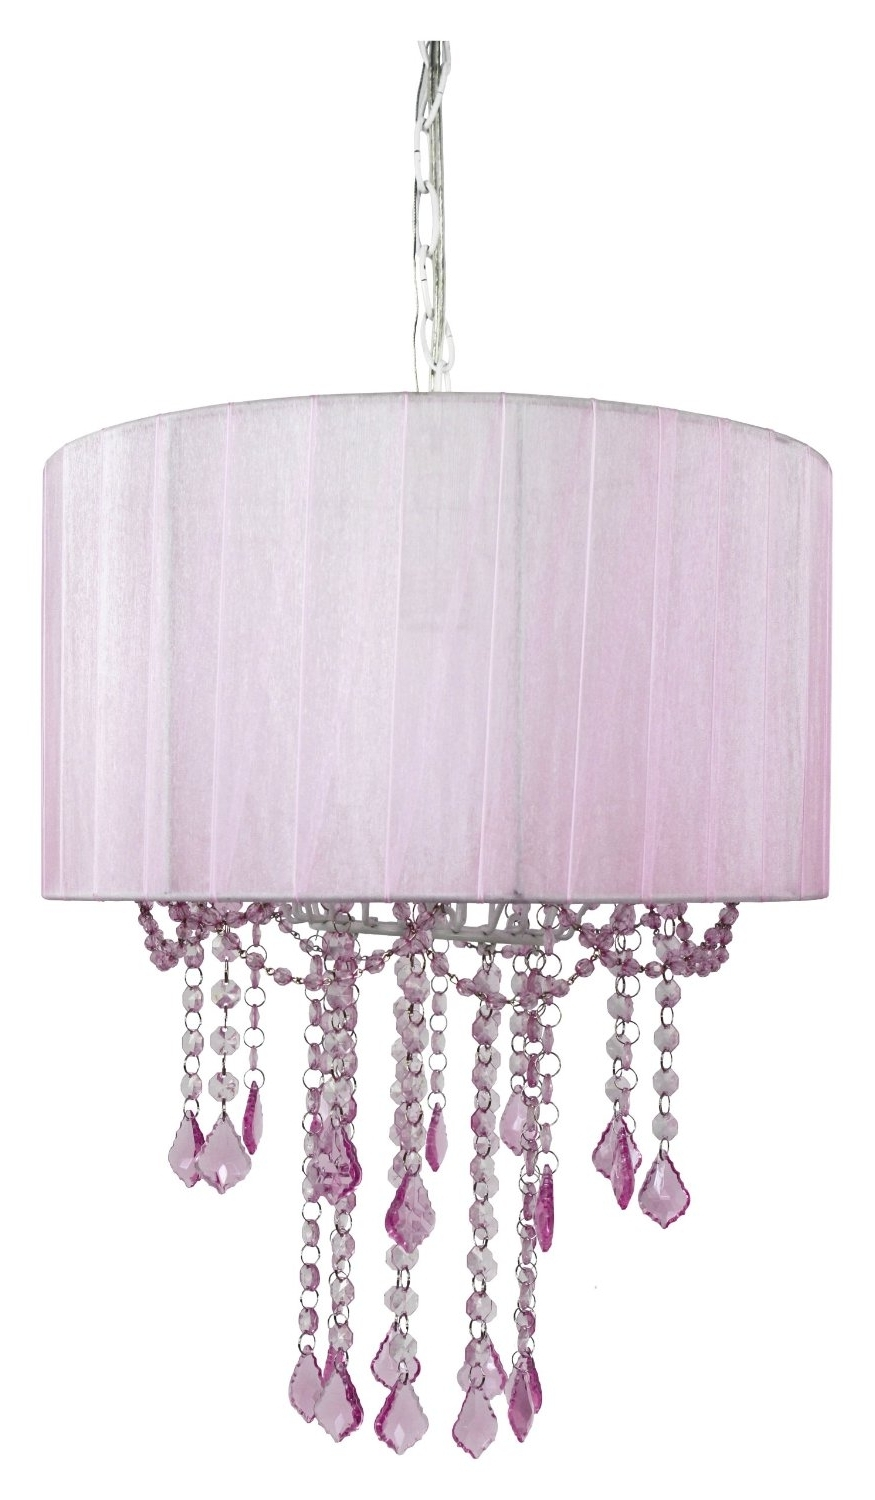 Design Trends With Regard To Chandelier Light Shades (View 13 of 20)